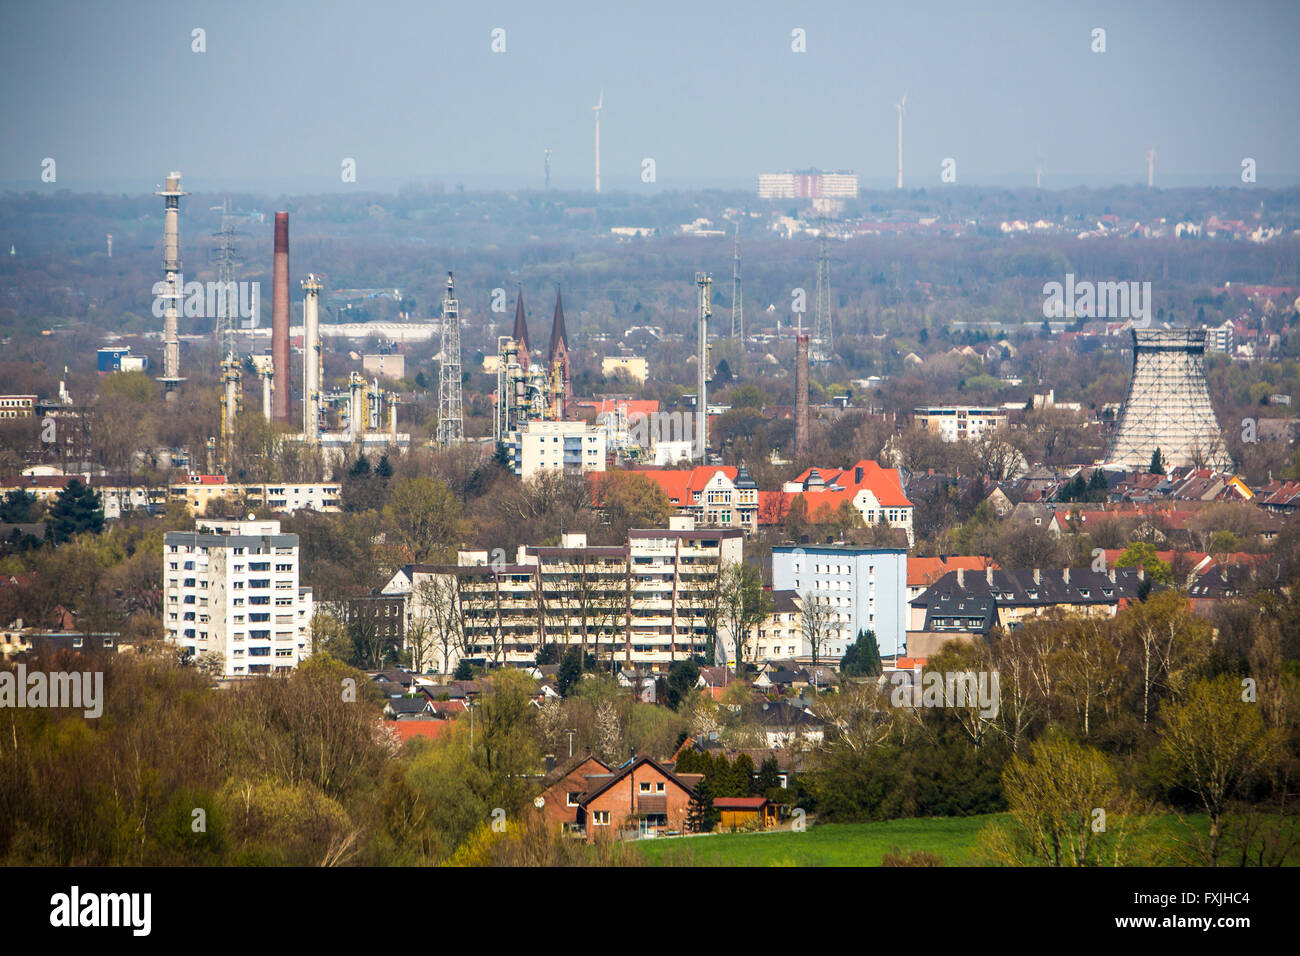 Overlooking Herne, INEOS Chemical Works, Germany - Stock Image